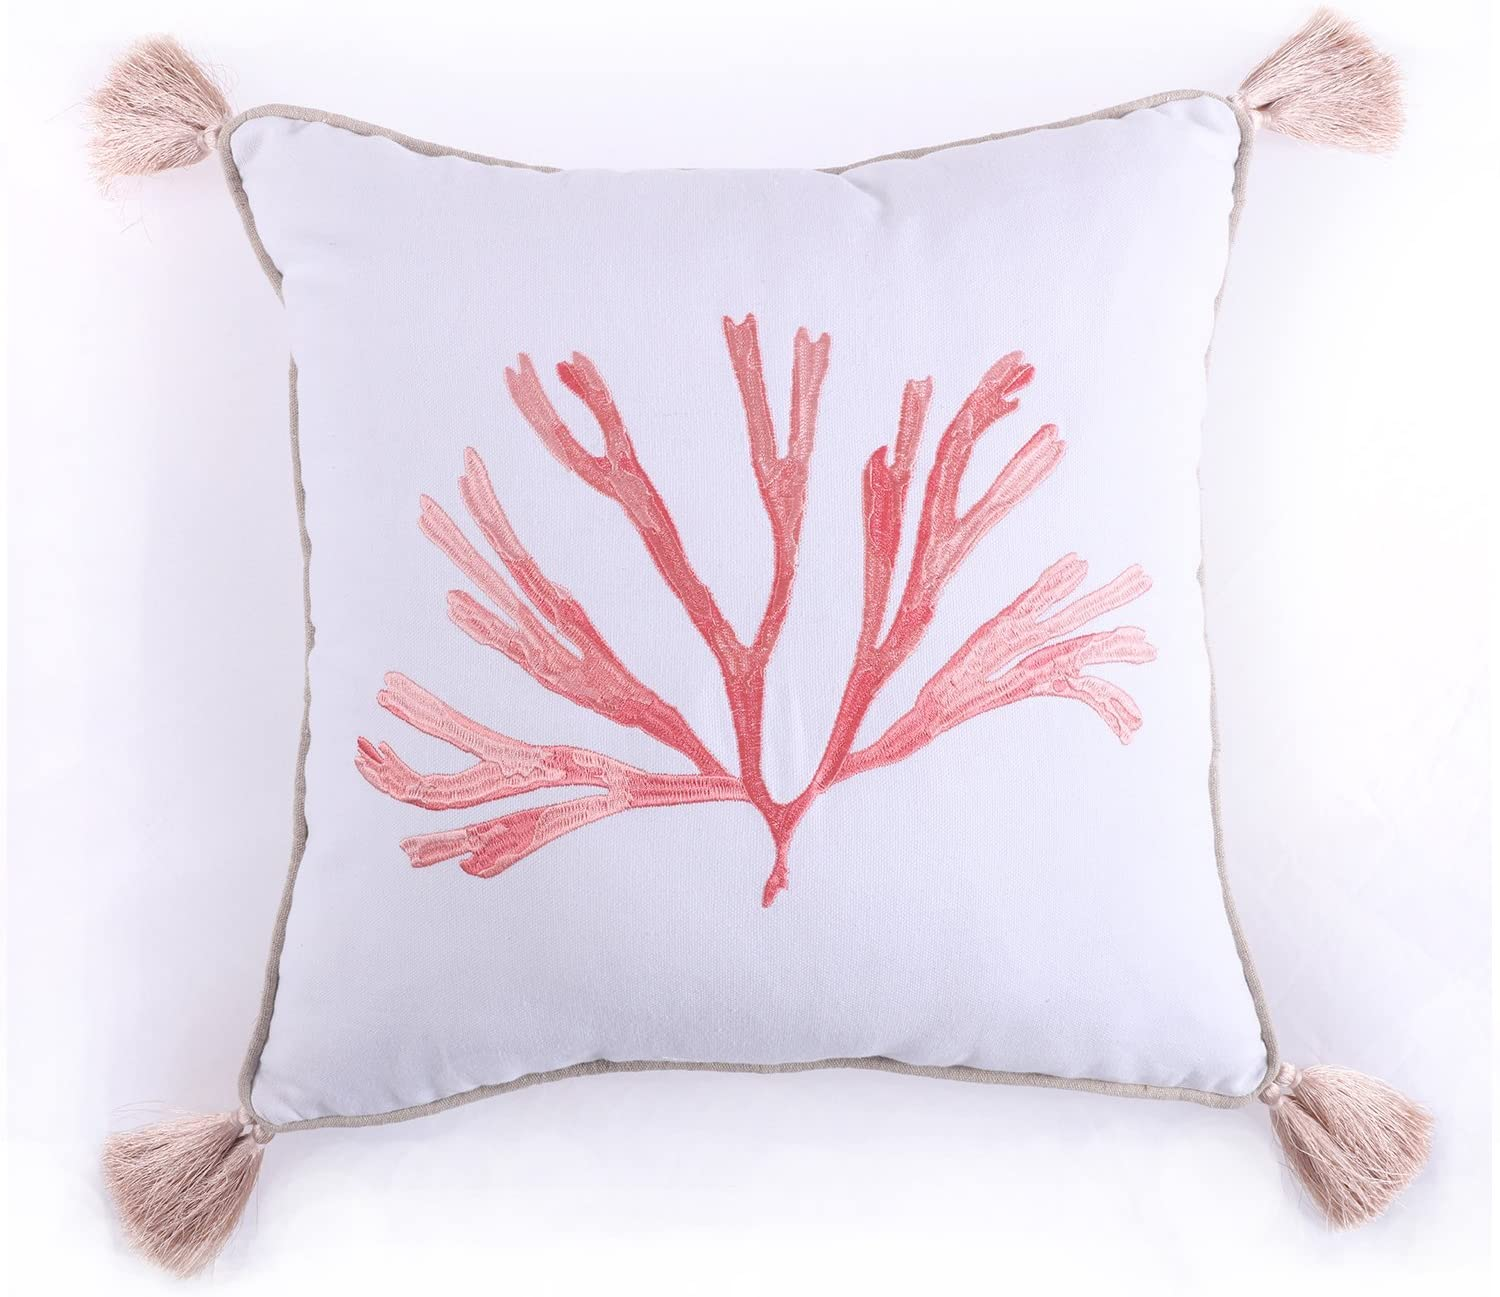 Levtex Embroidered Coral with Tassels Pillow